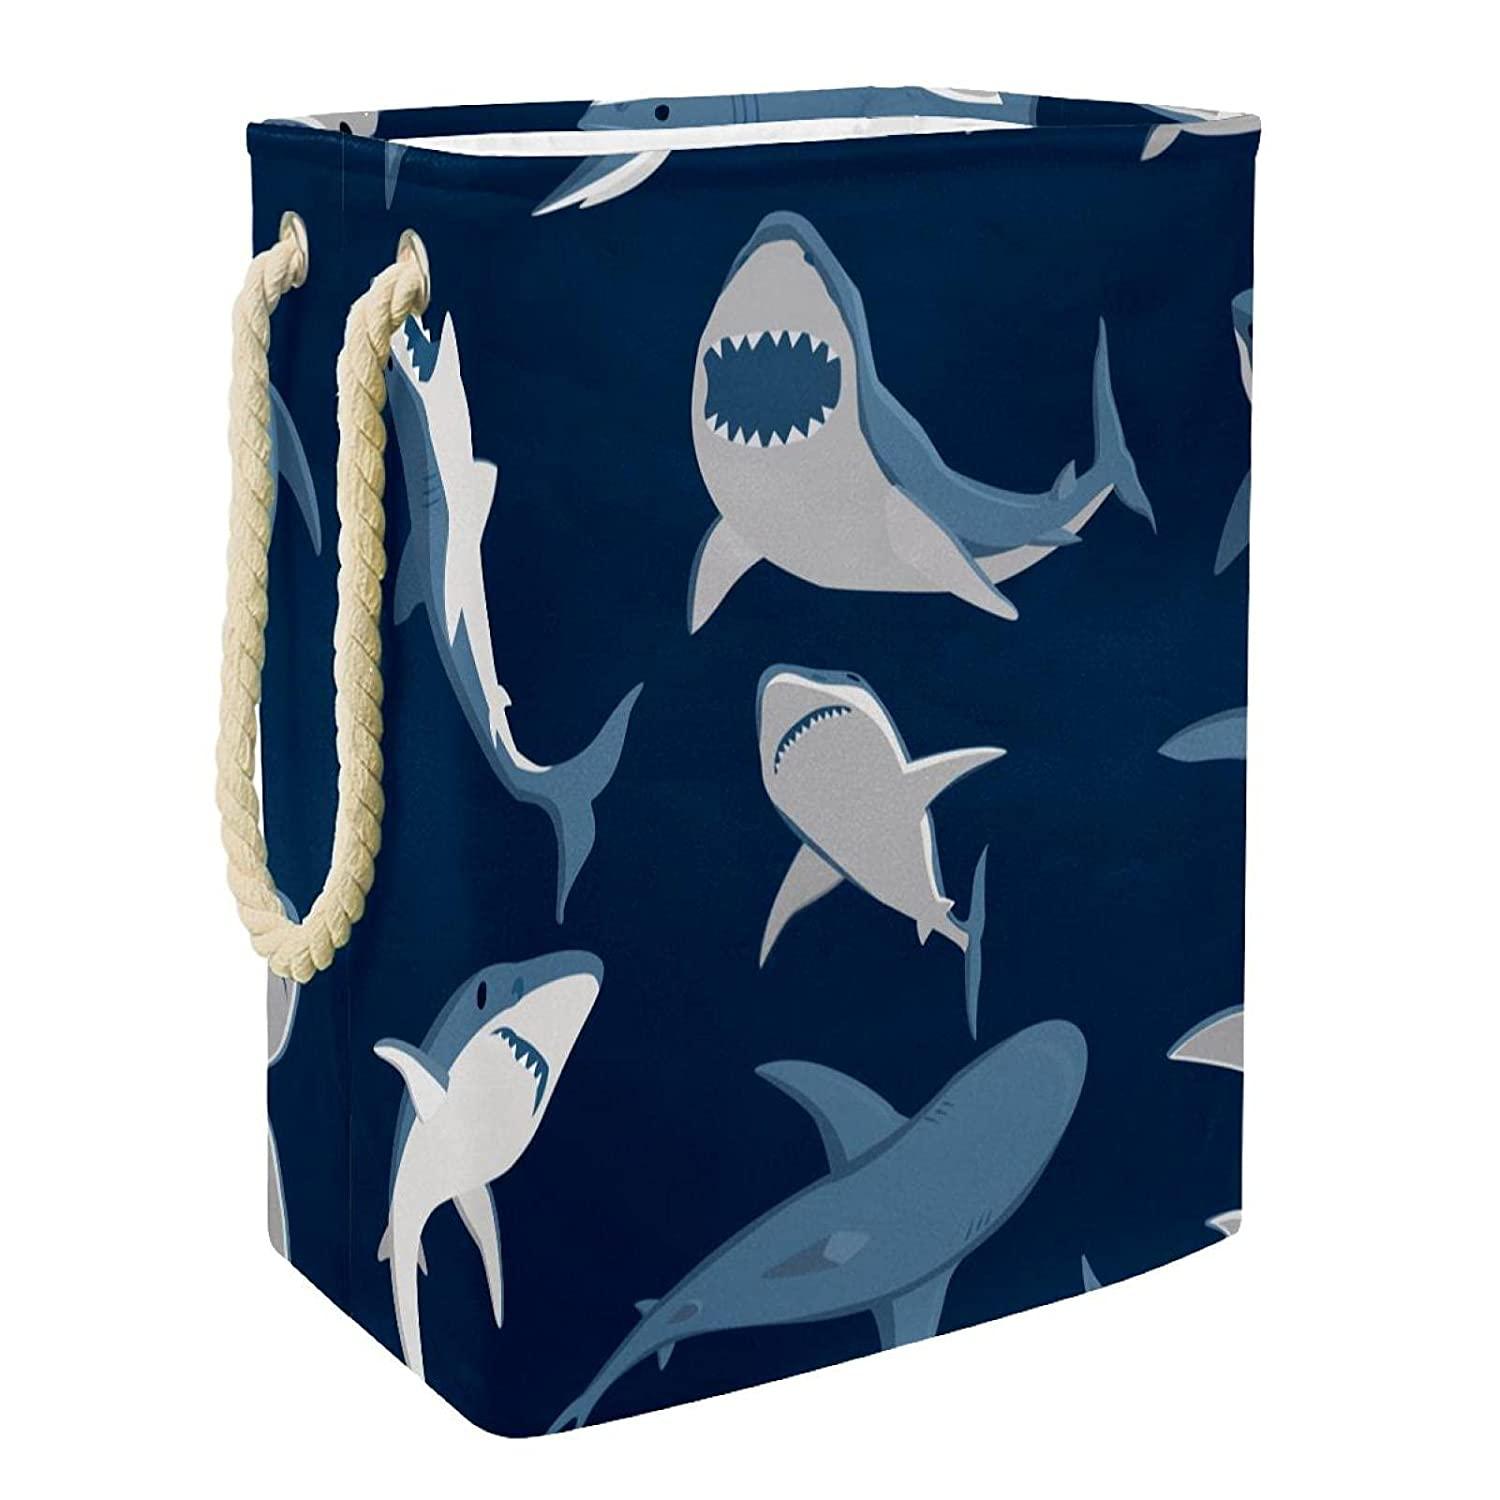 Kids Storage Basket Fierce Shark C Max 63% OFF Accessory Bin New product Toy and